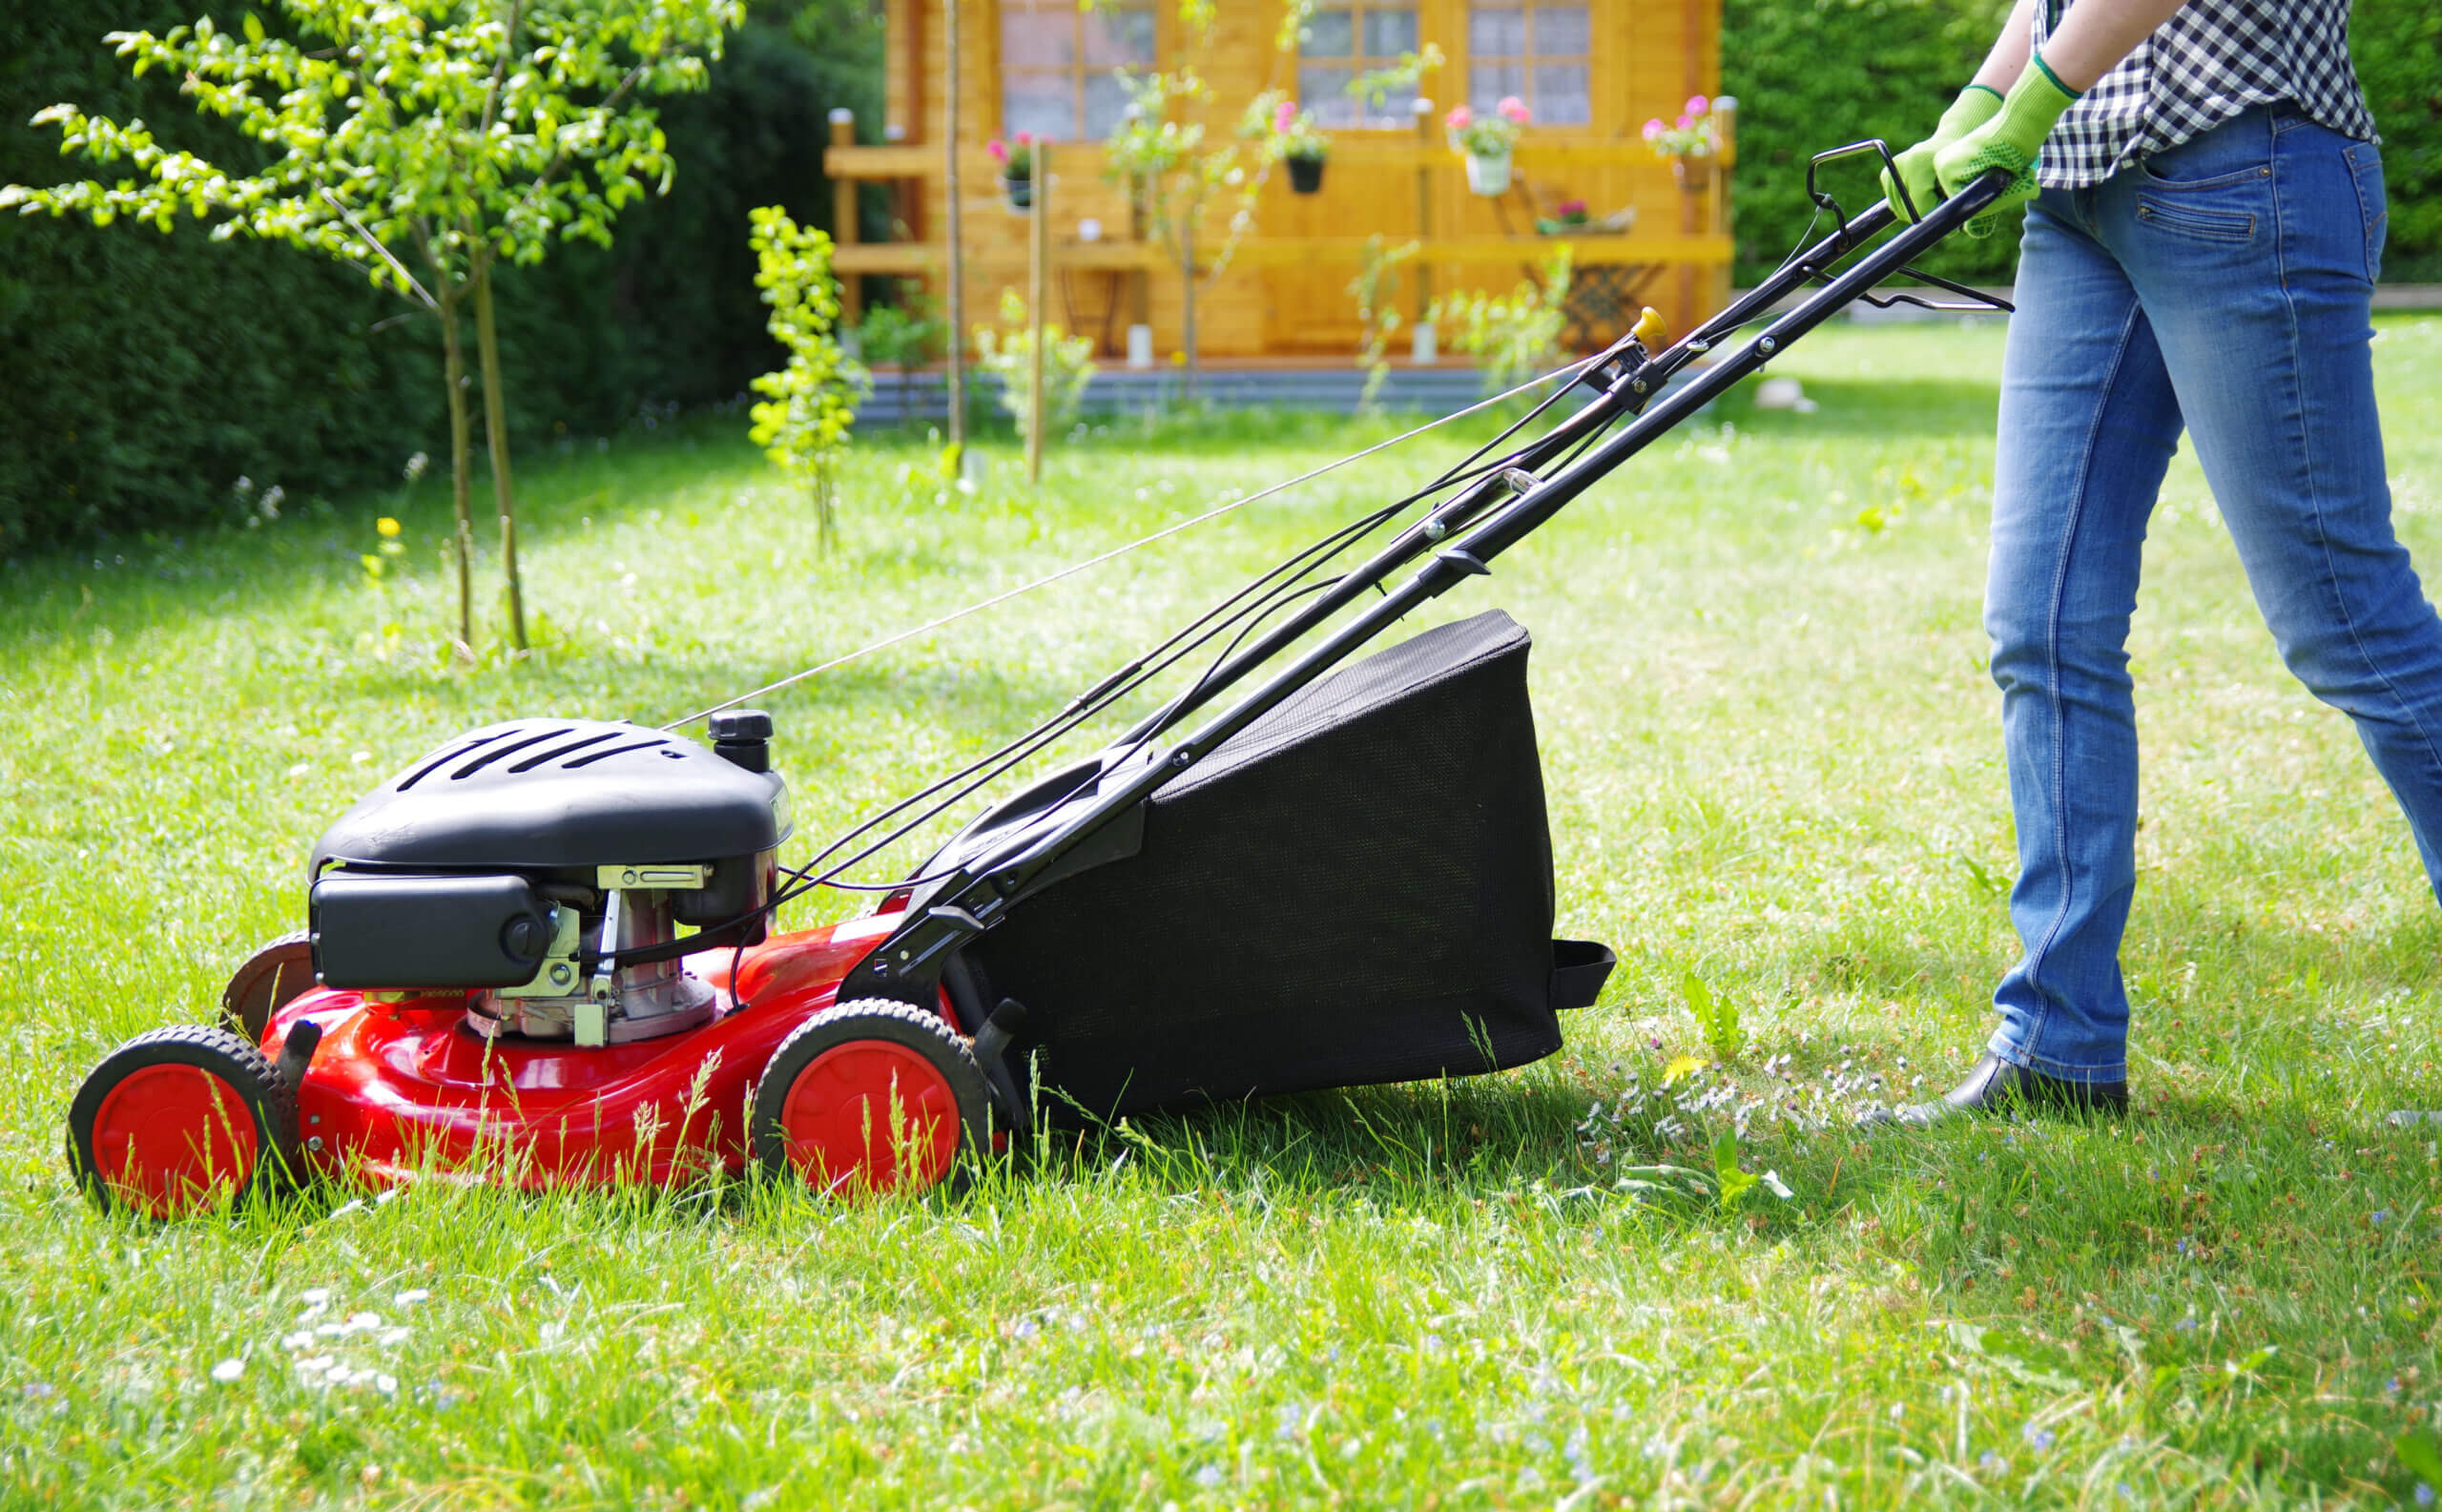 Proper techniques to mow your lawn include time of day, watering, and patterns.